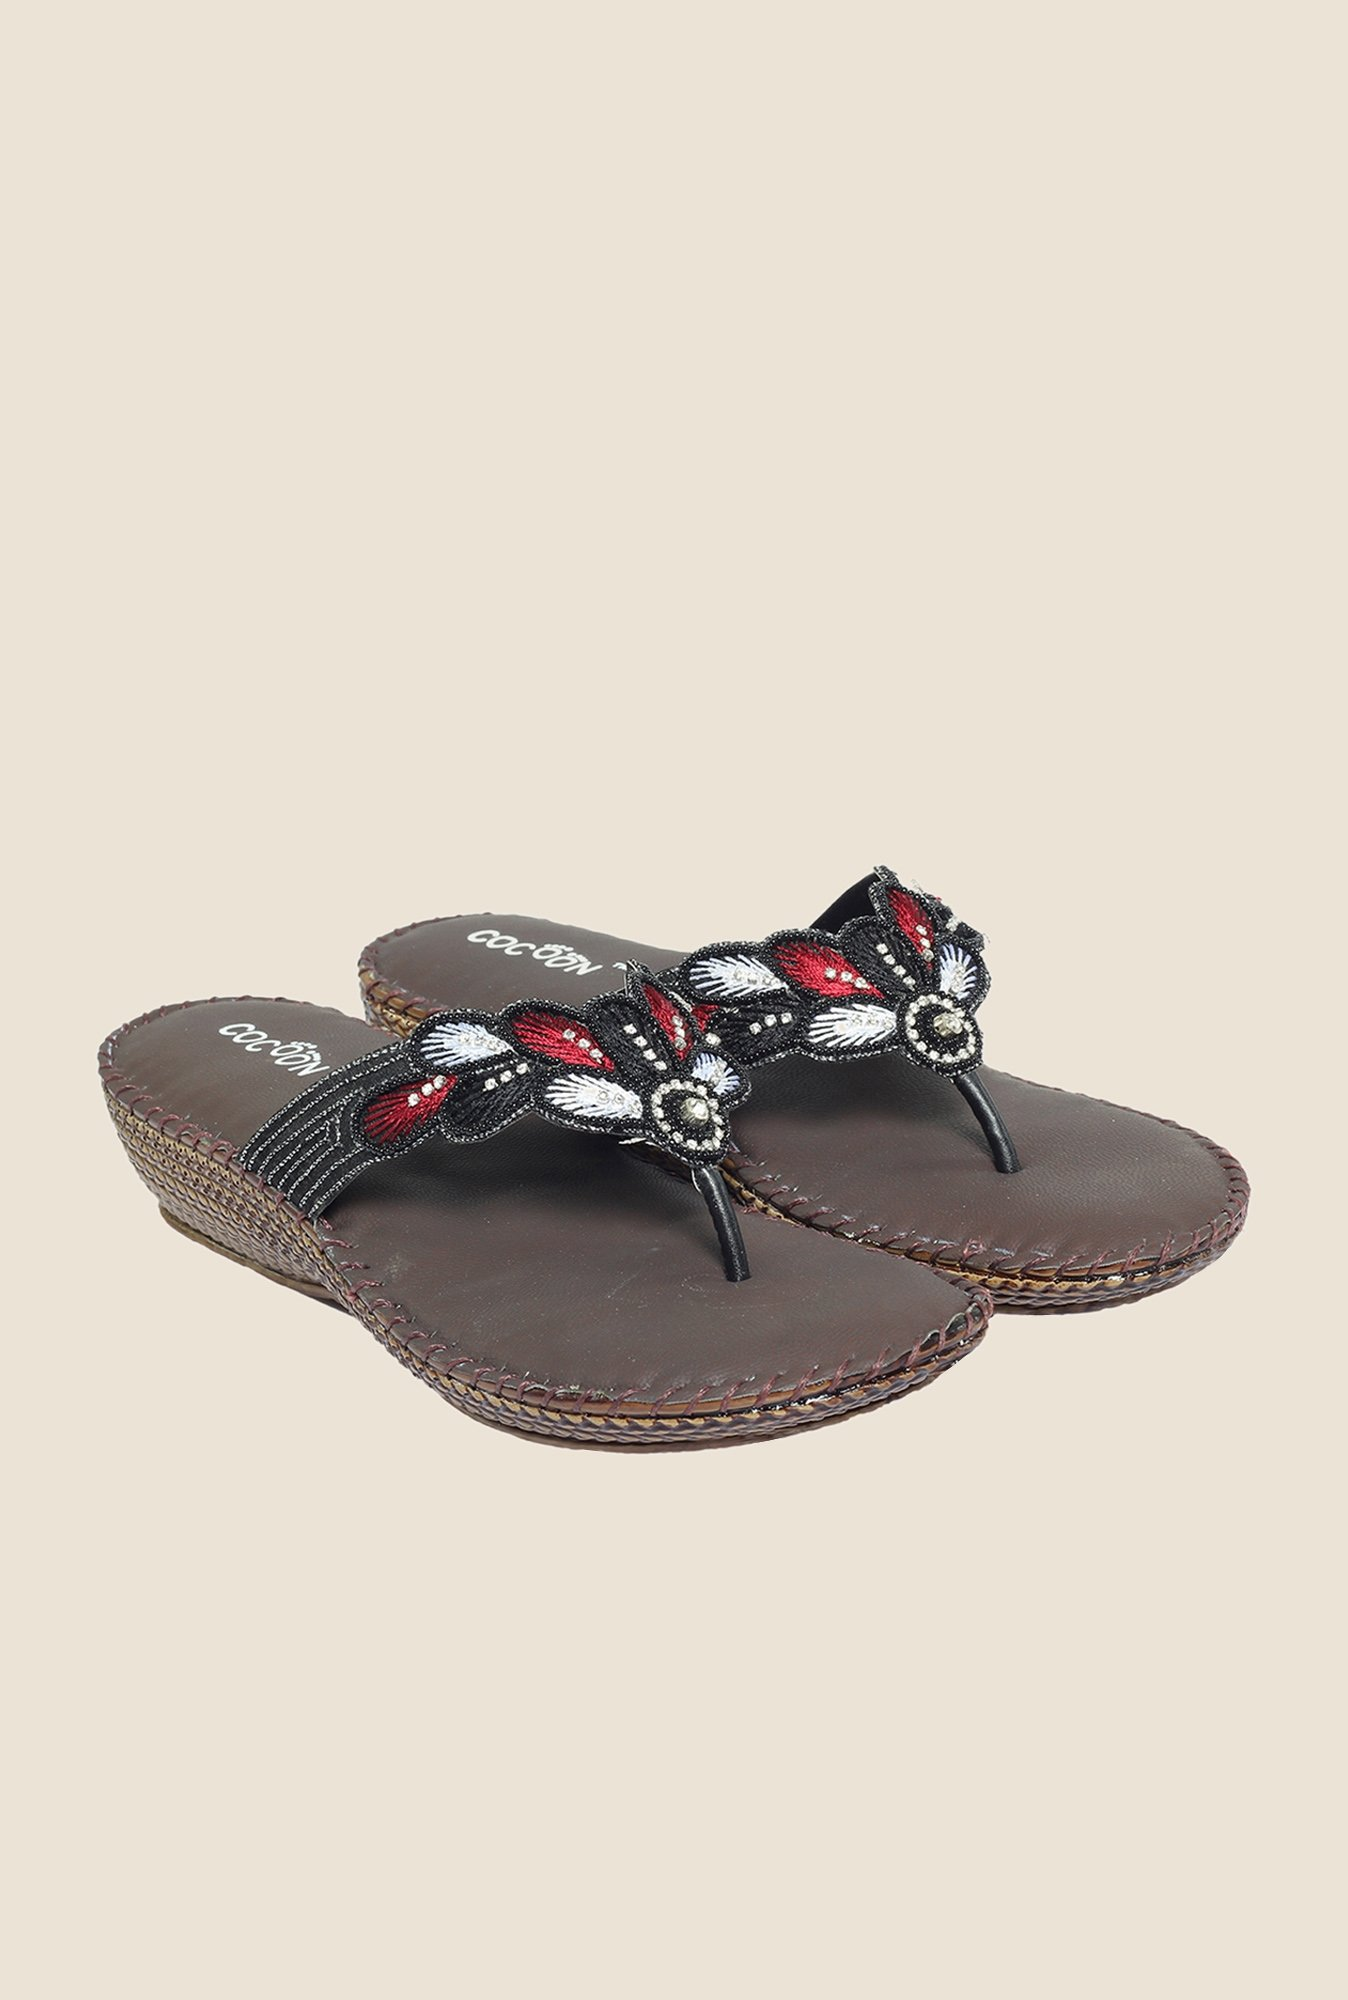 Cocoon Black & Red Thong Sandals